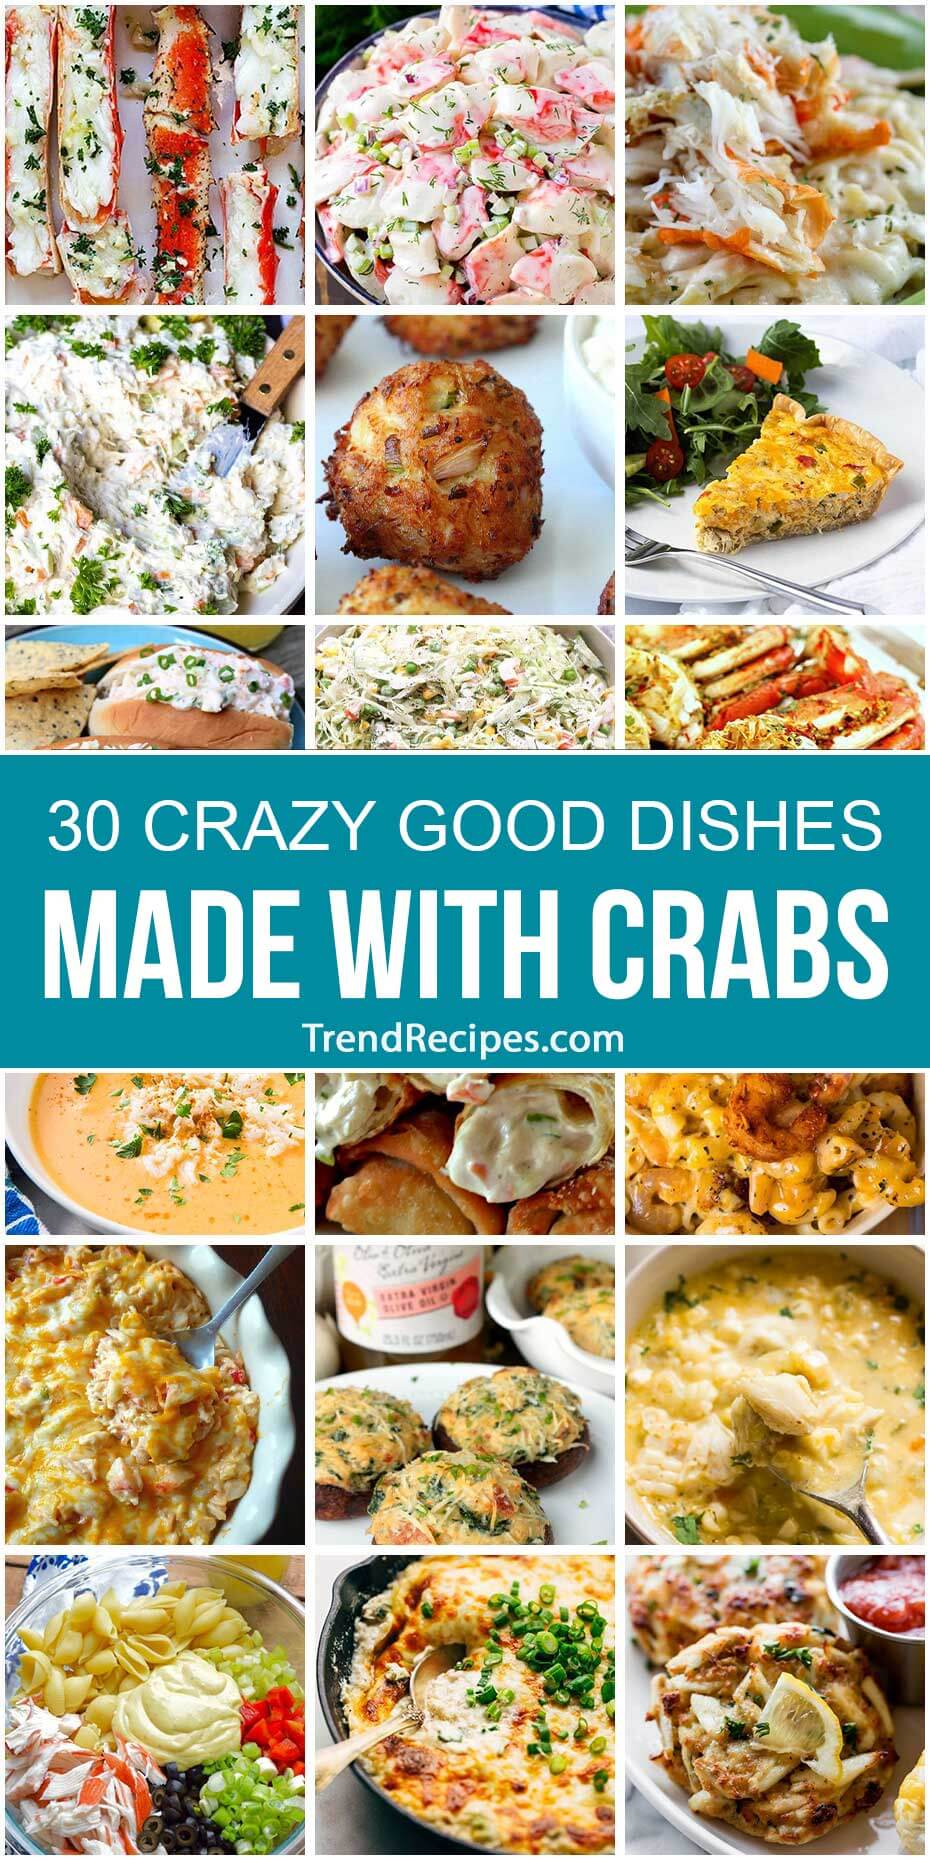 Here Are 30 Crazy Good Dishes To Make With Crabs